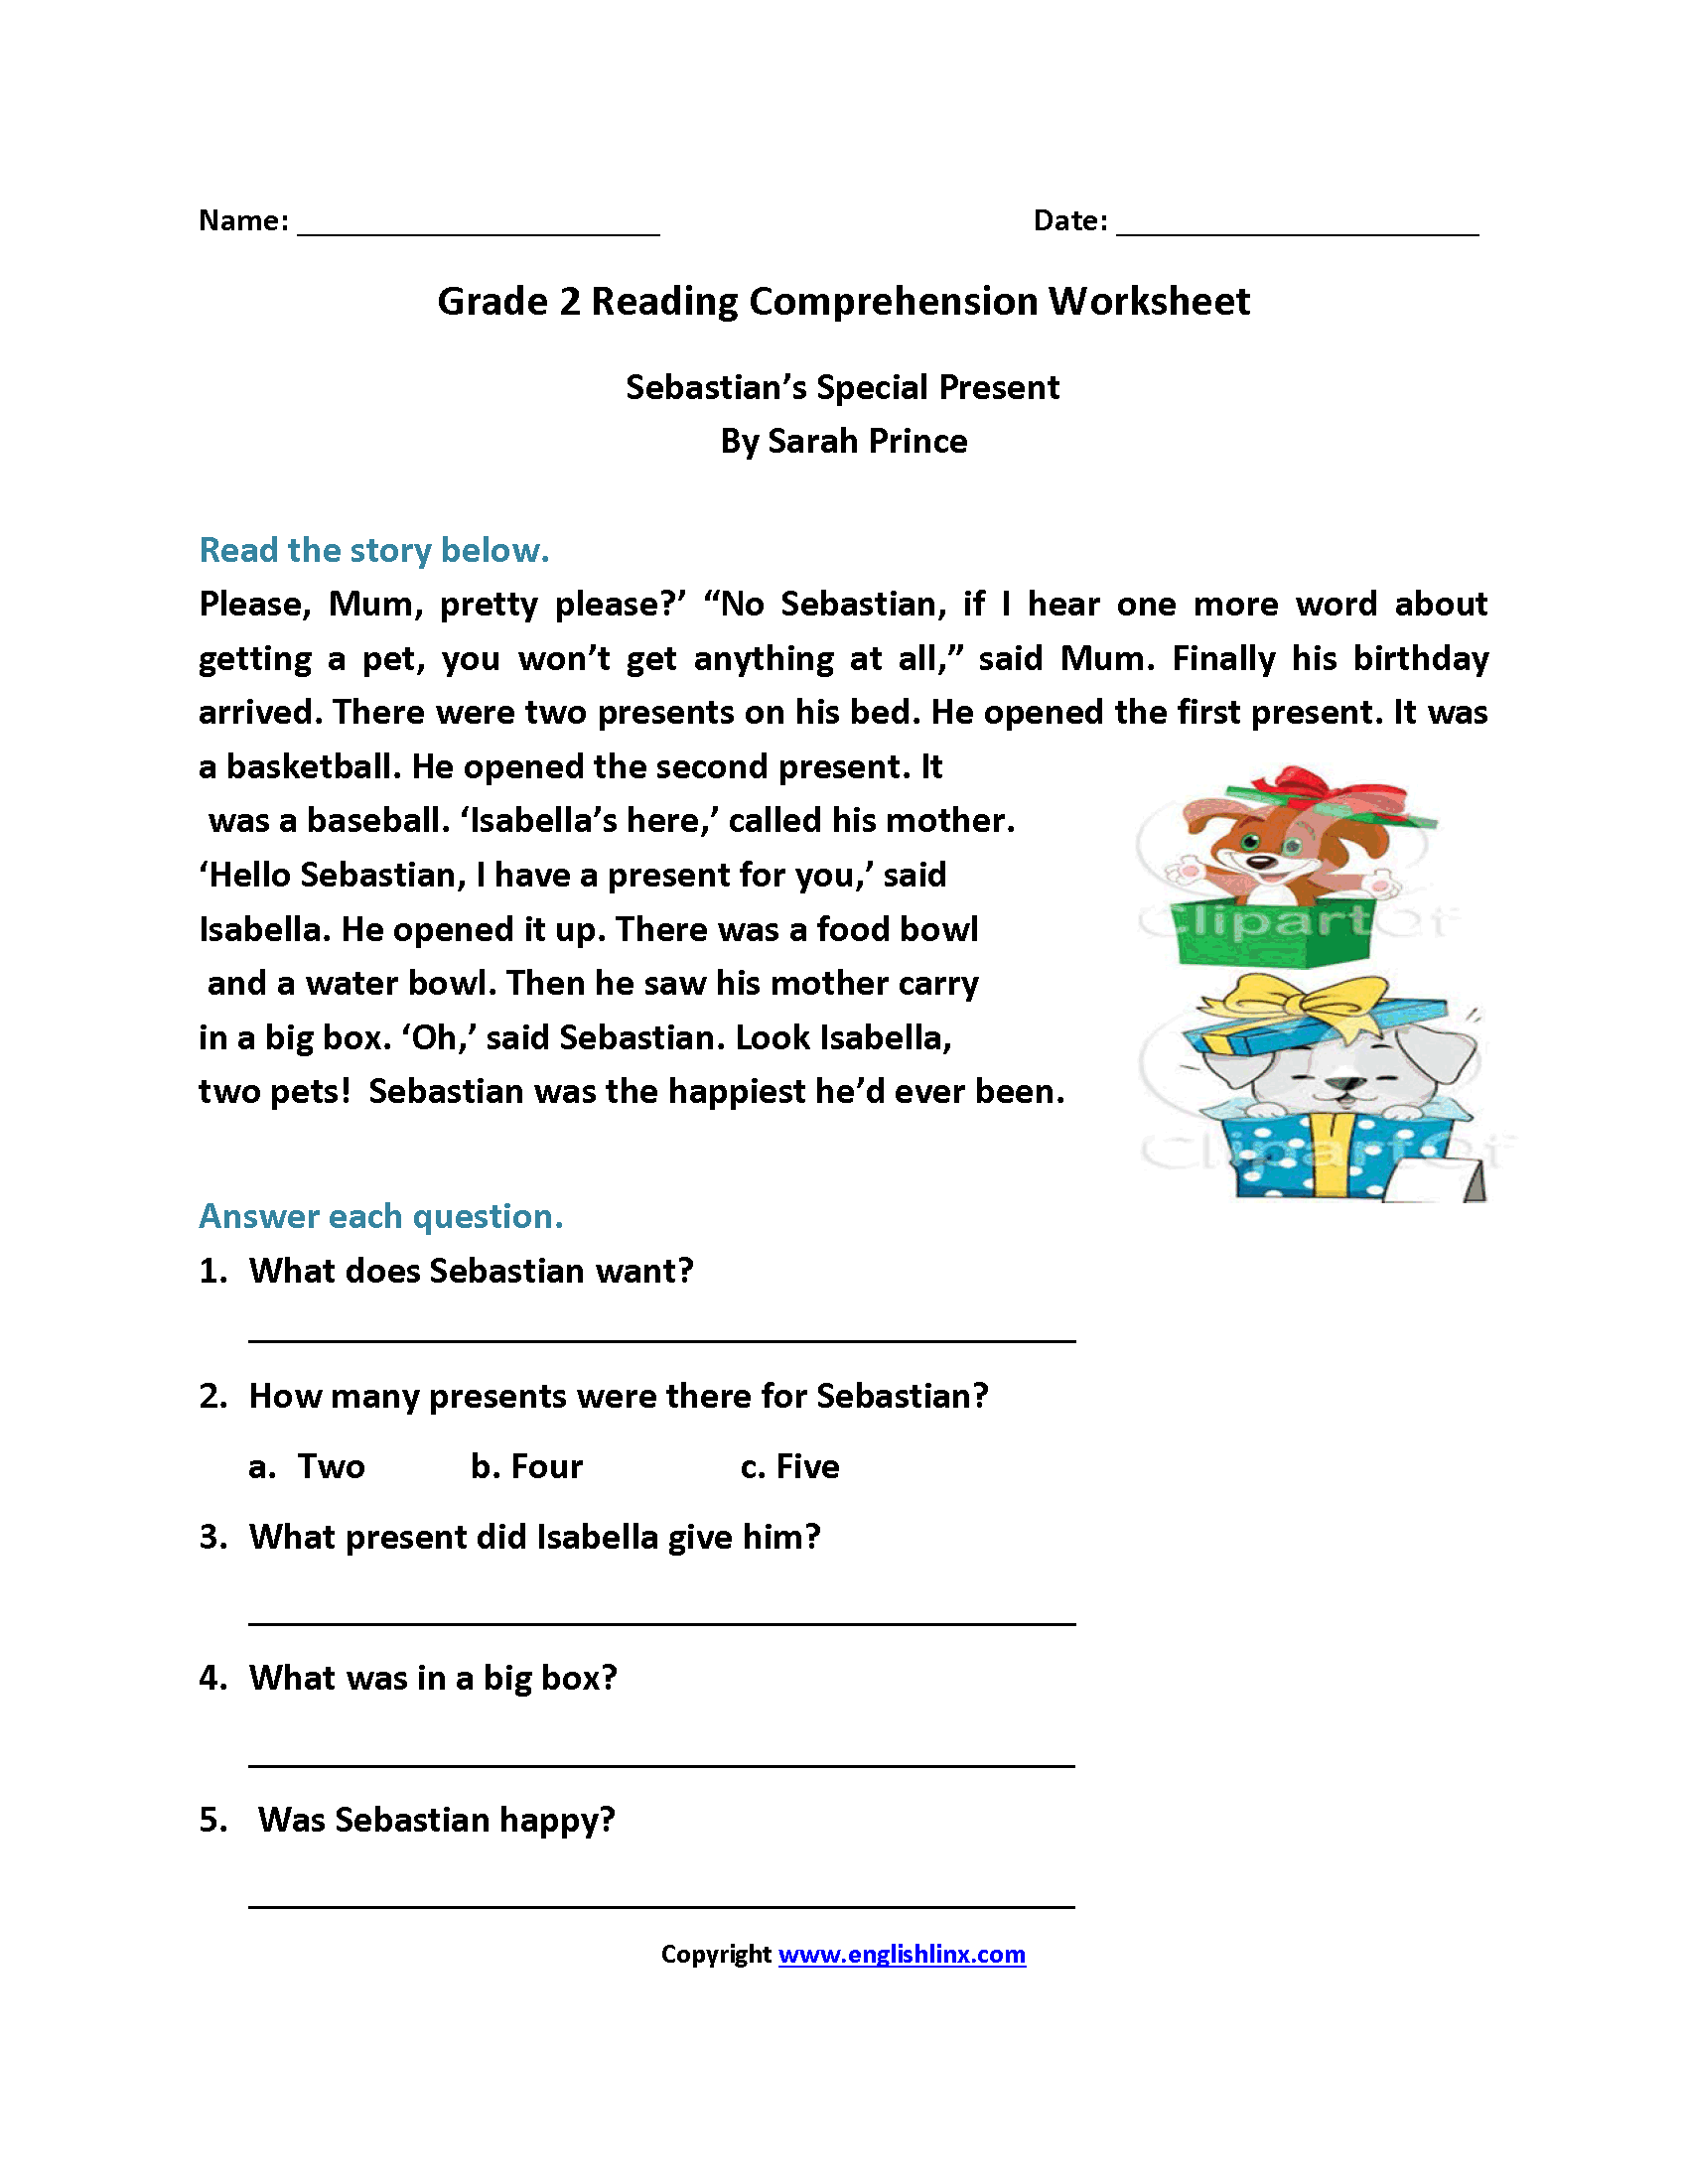 Free Online Reading Comprehension Worksheets For 2nd Grade